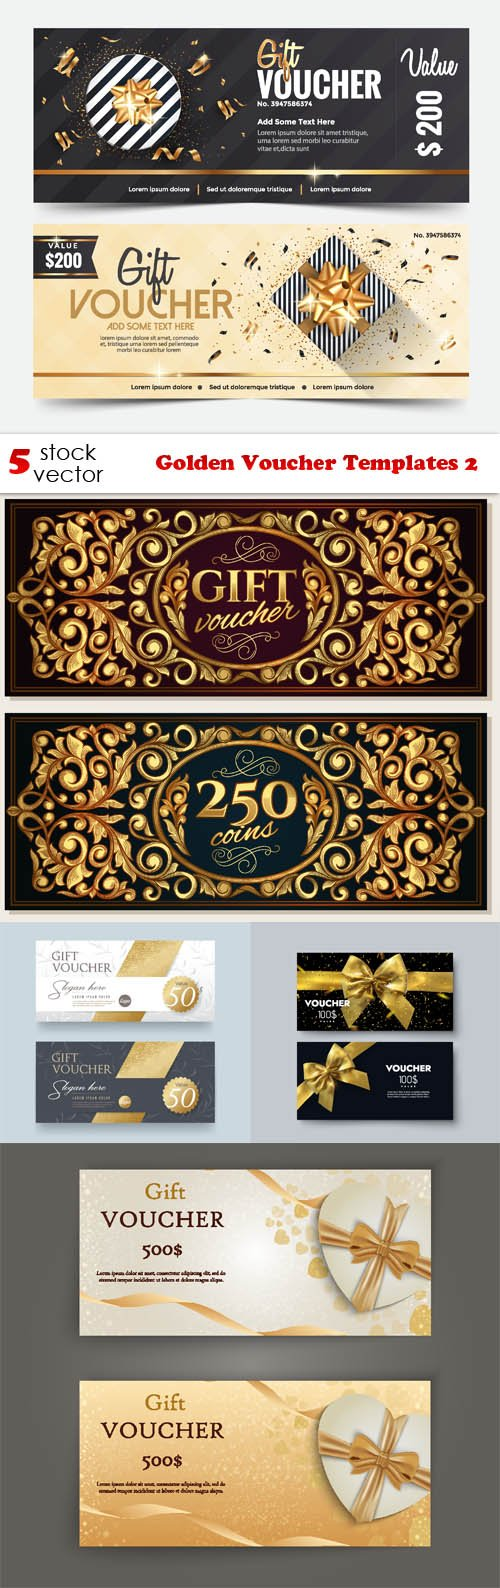 Vectors - Golden Voucher Templates 2